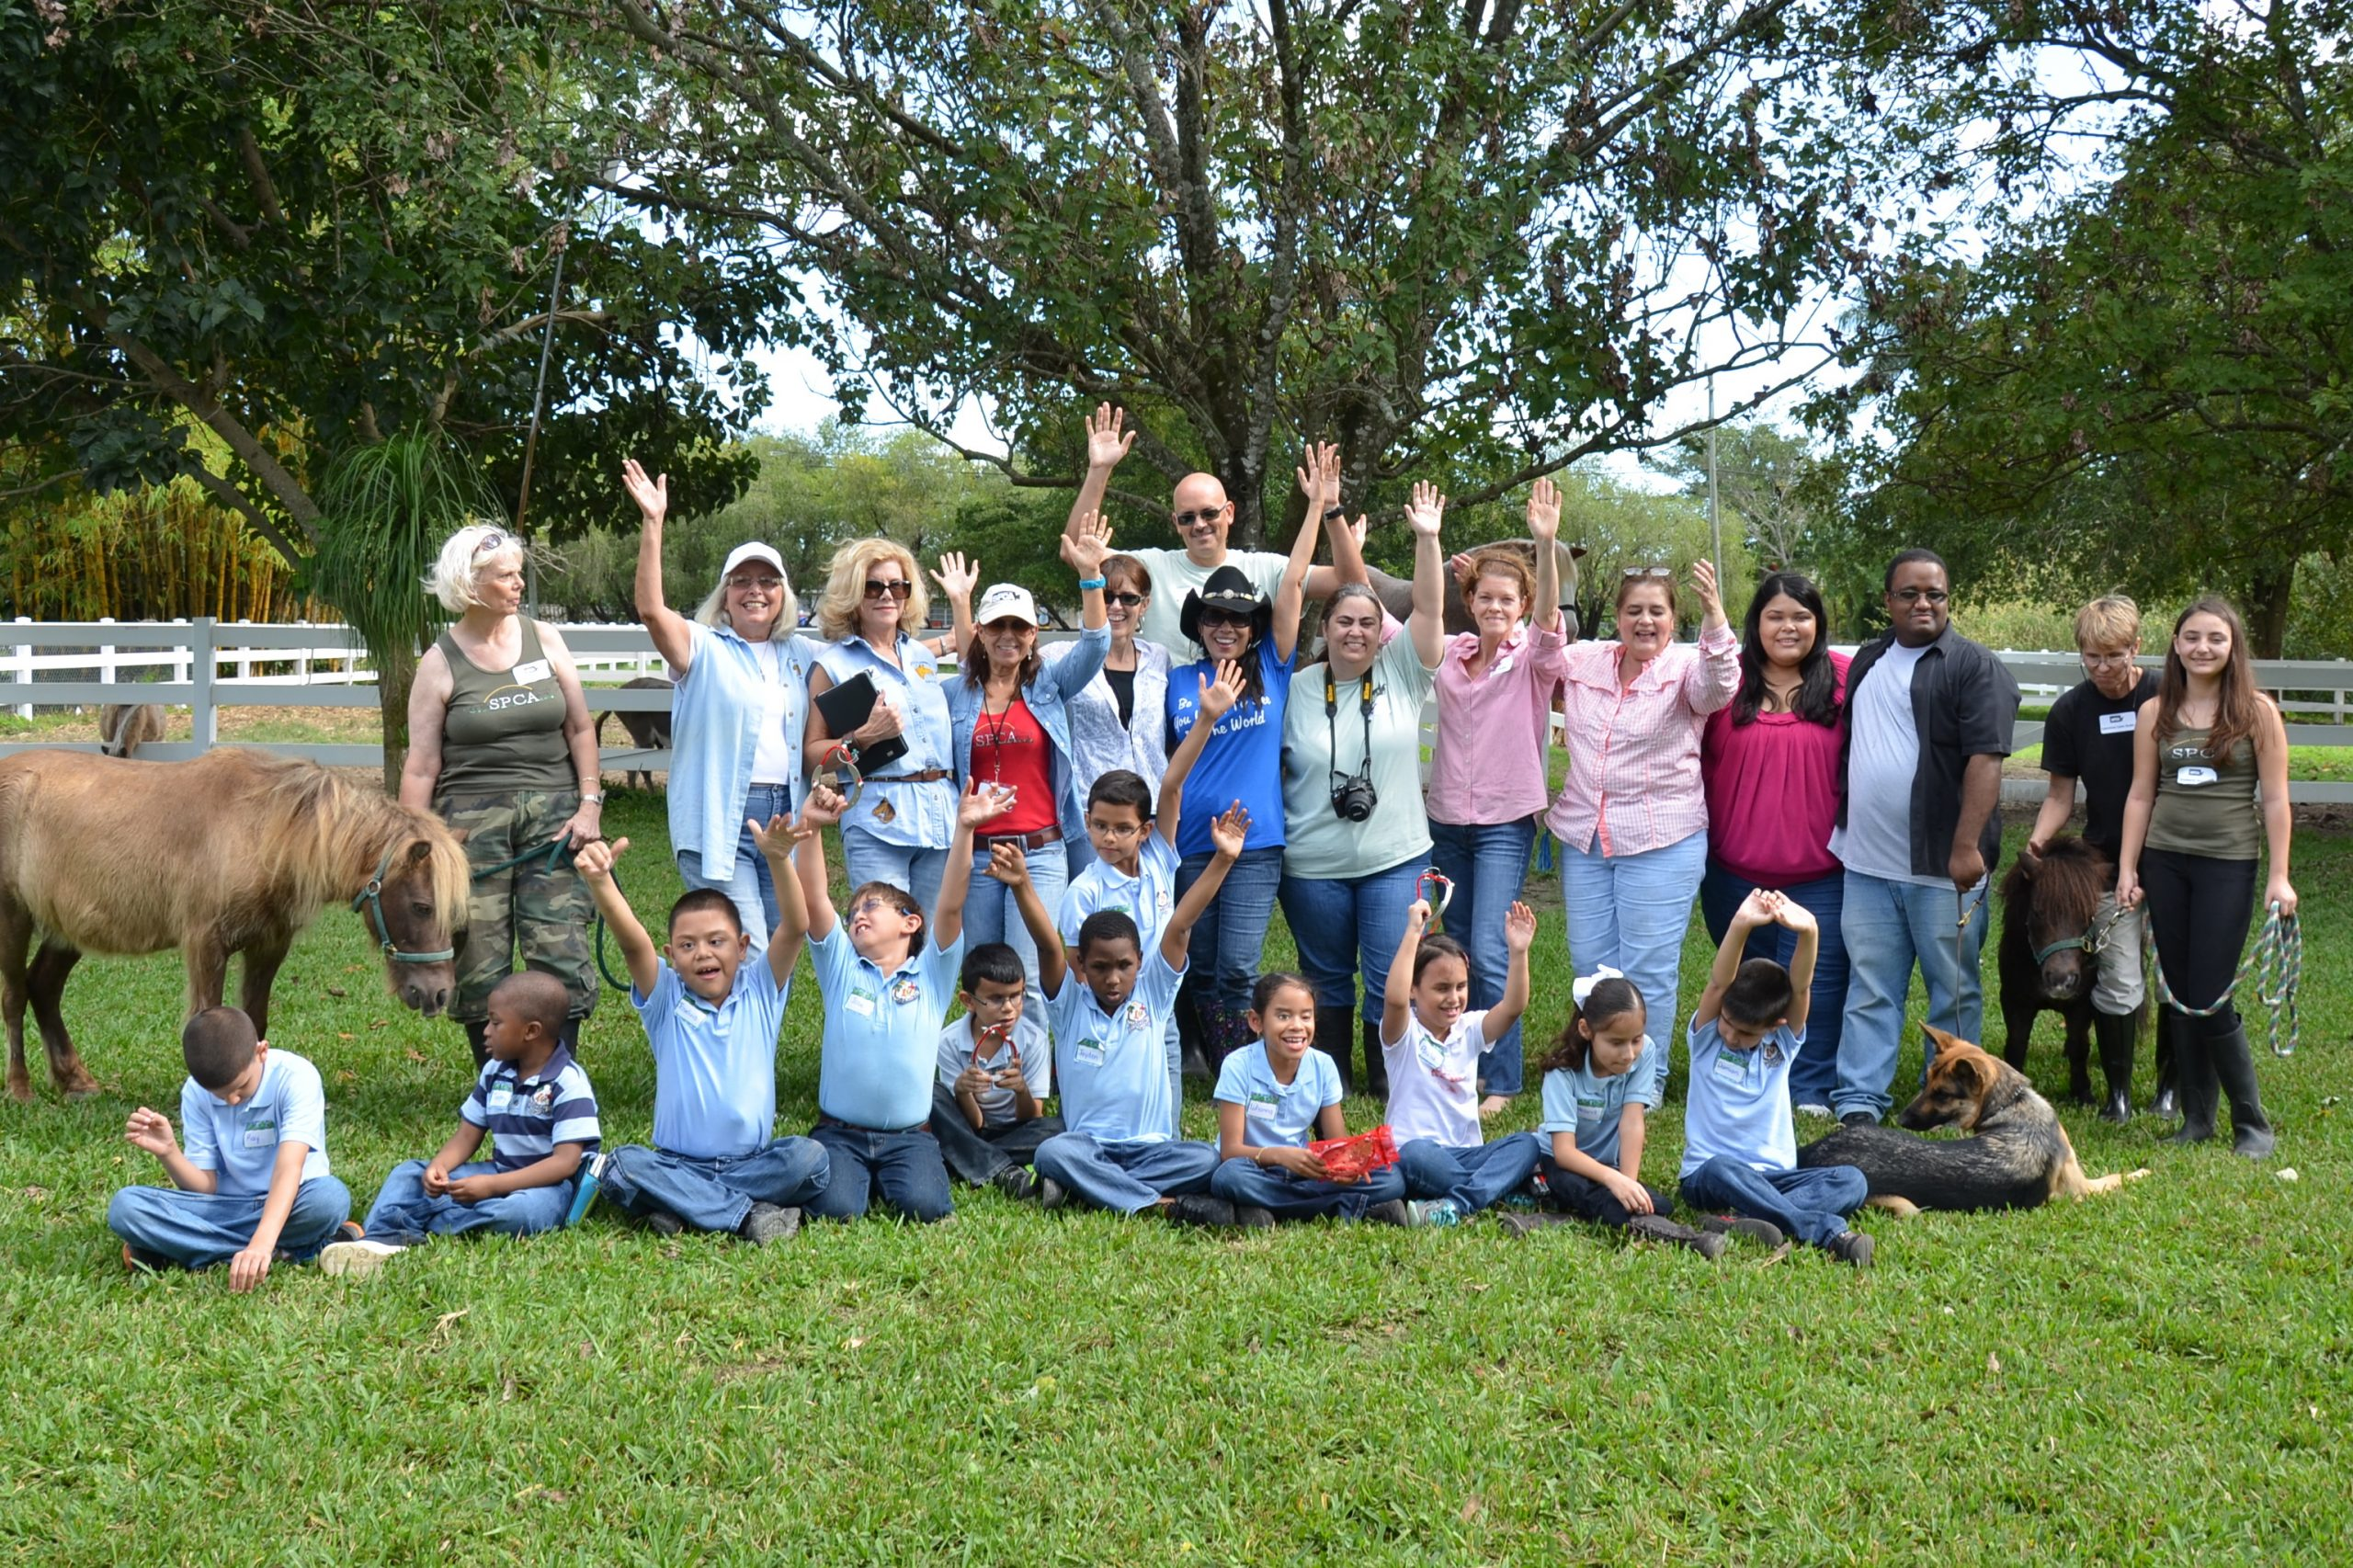 South Florida SPCA Horse Rescue hosted 11 blind children